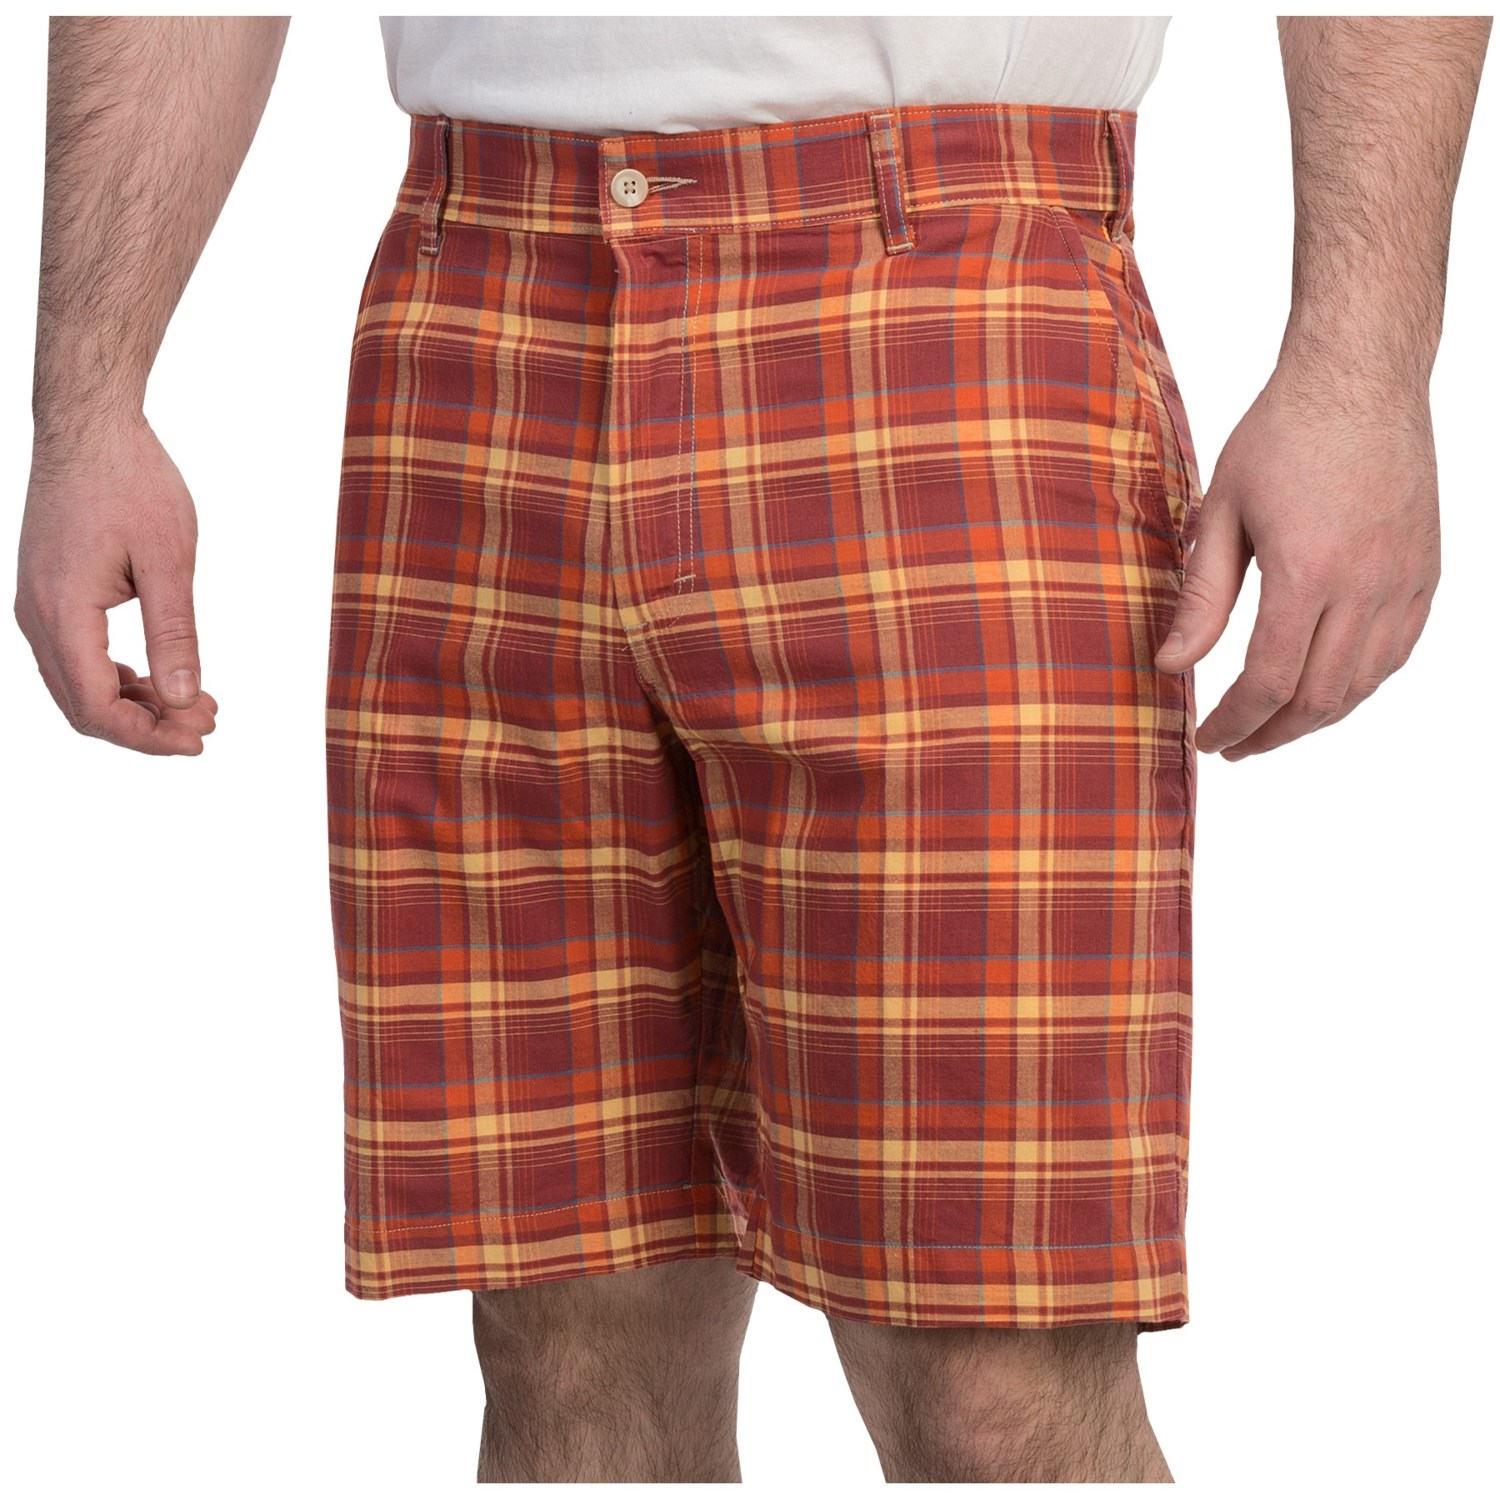 are plaid shorts in style for men 2014 bills khakis madras ...